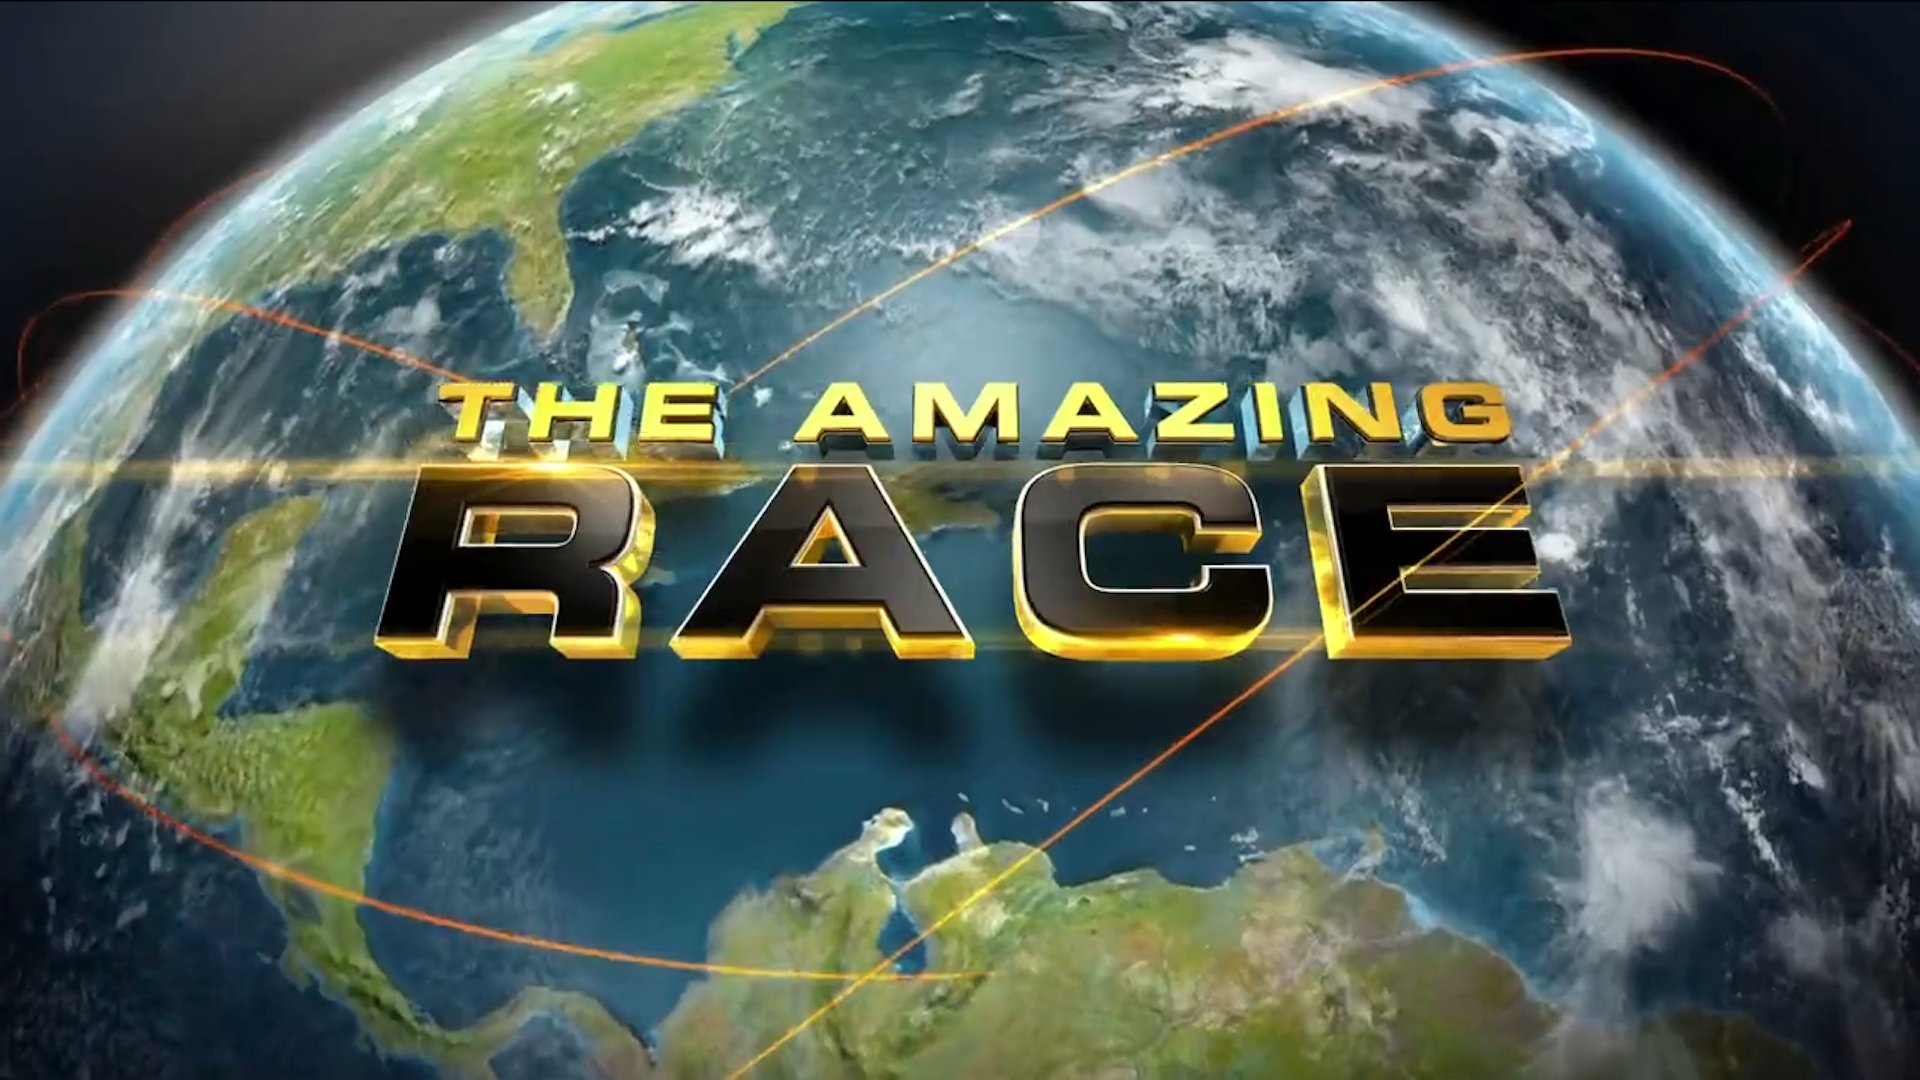 Racer clipart amazing race By Amazing The Home Wikia